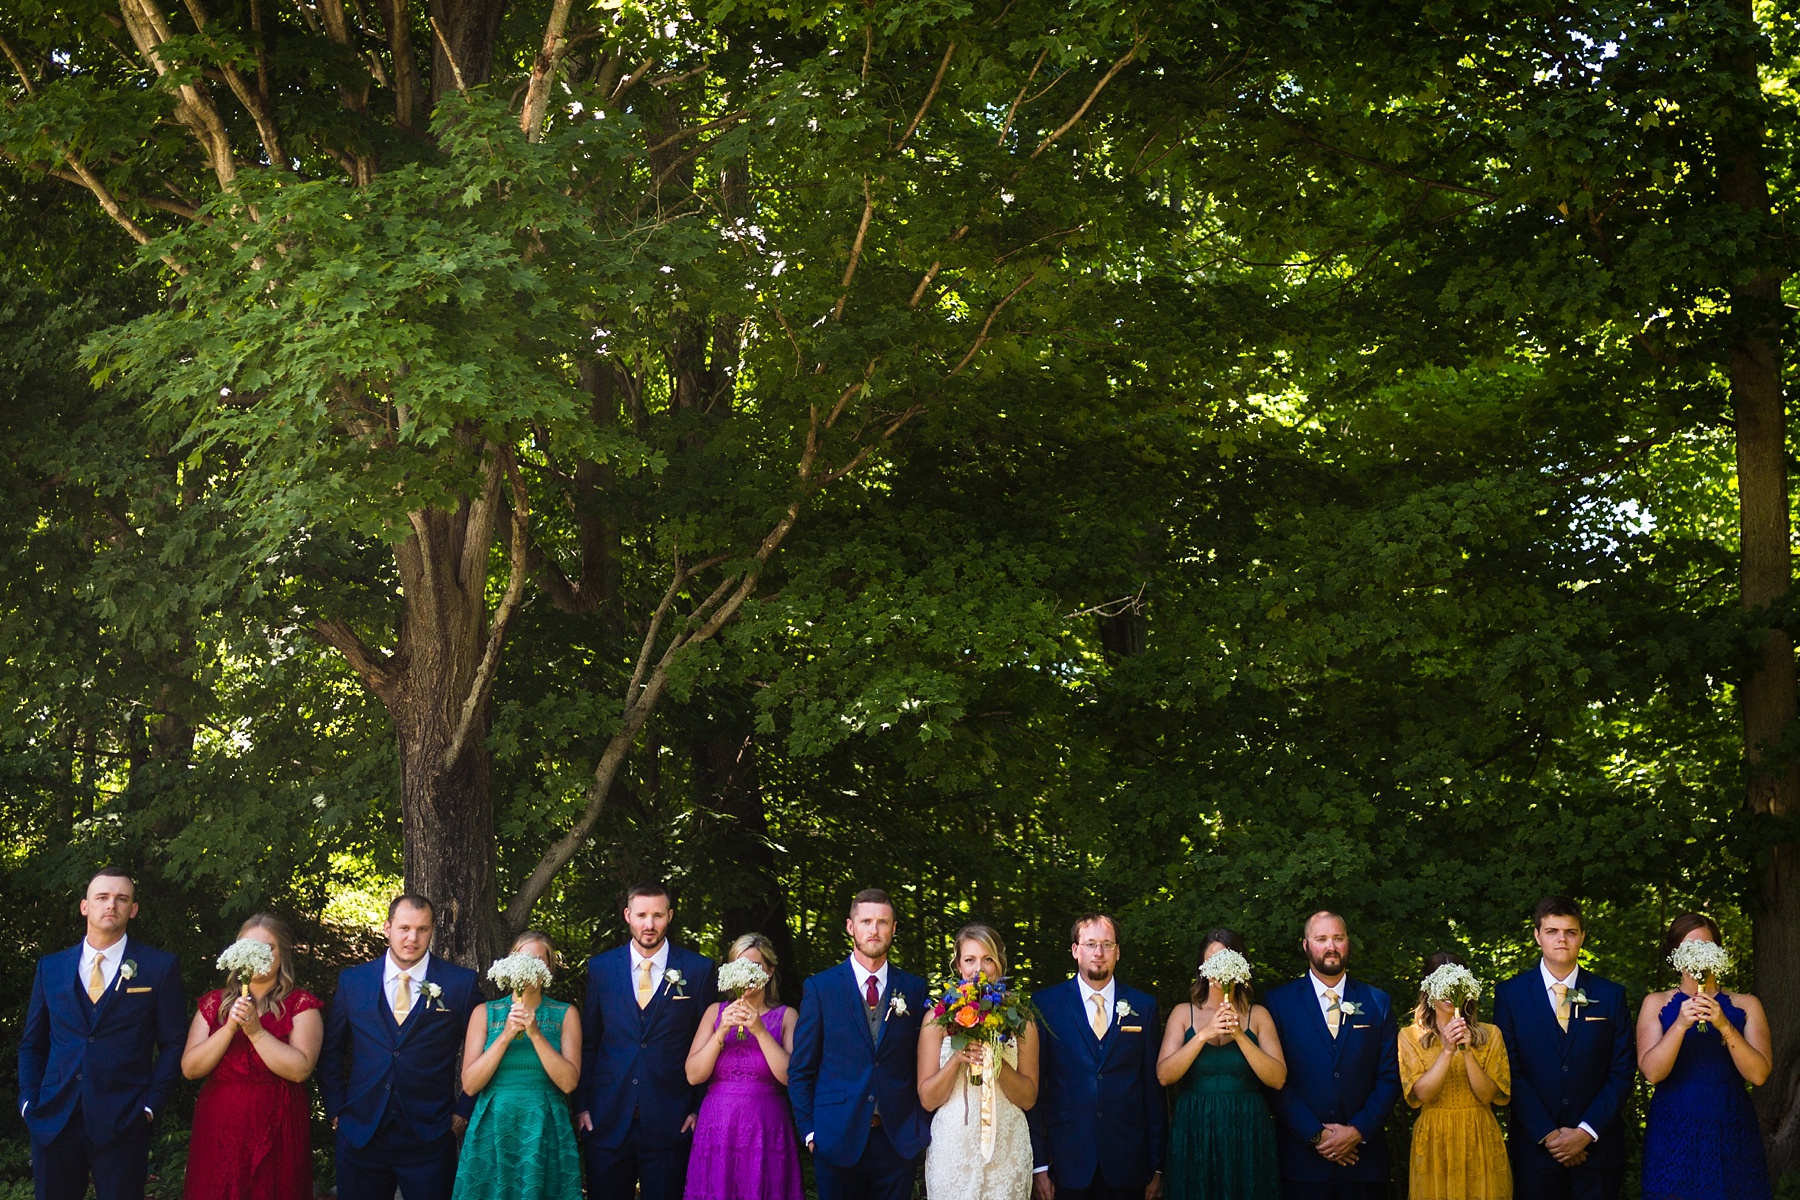 Brandon_Shafer_Photography_Millcreek_Wilde_Barn_Wedding_0030.jpg